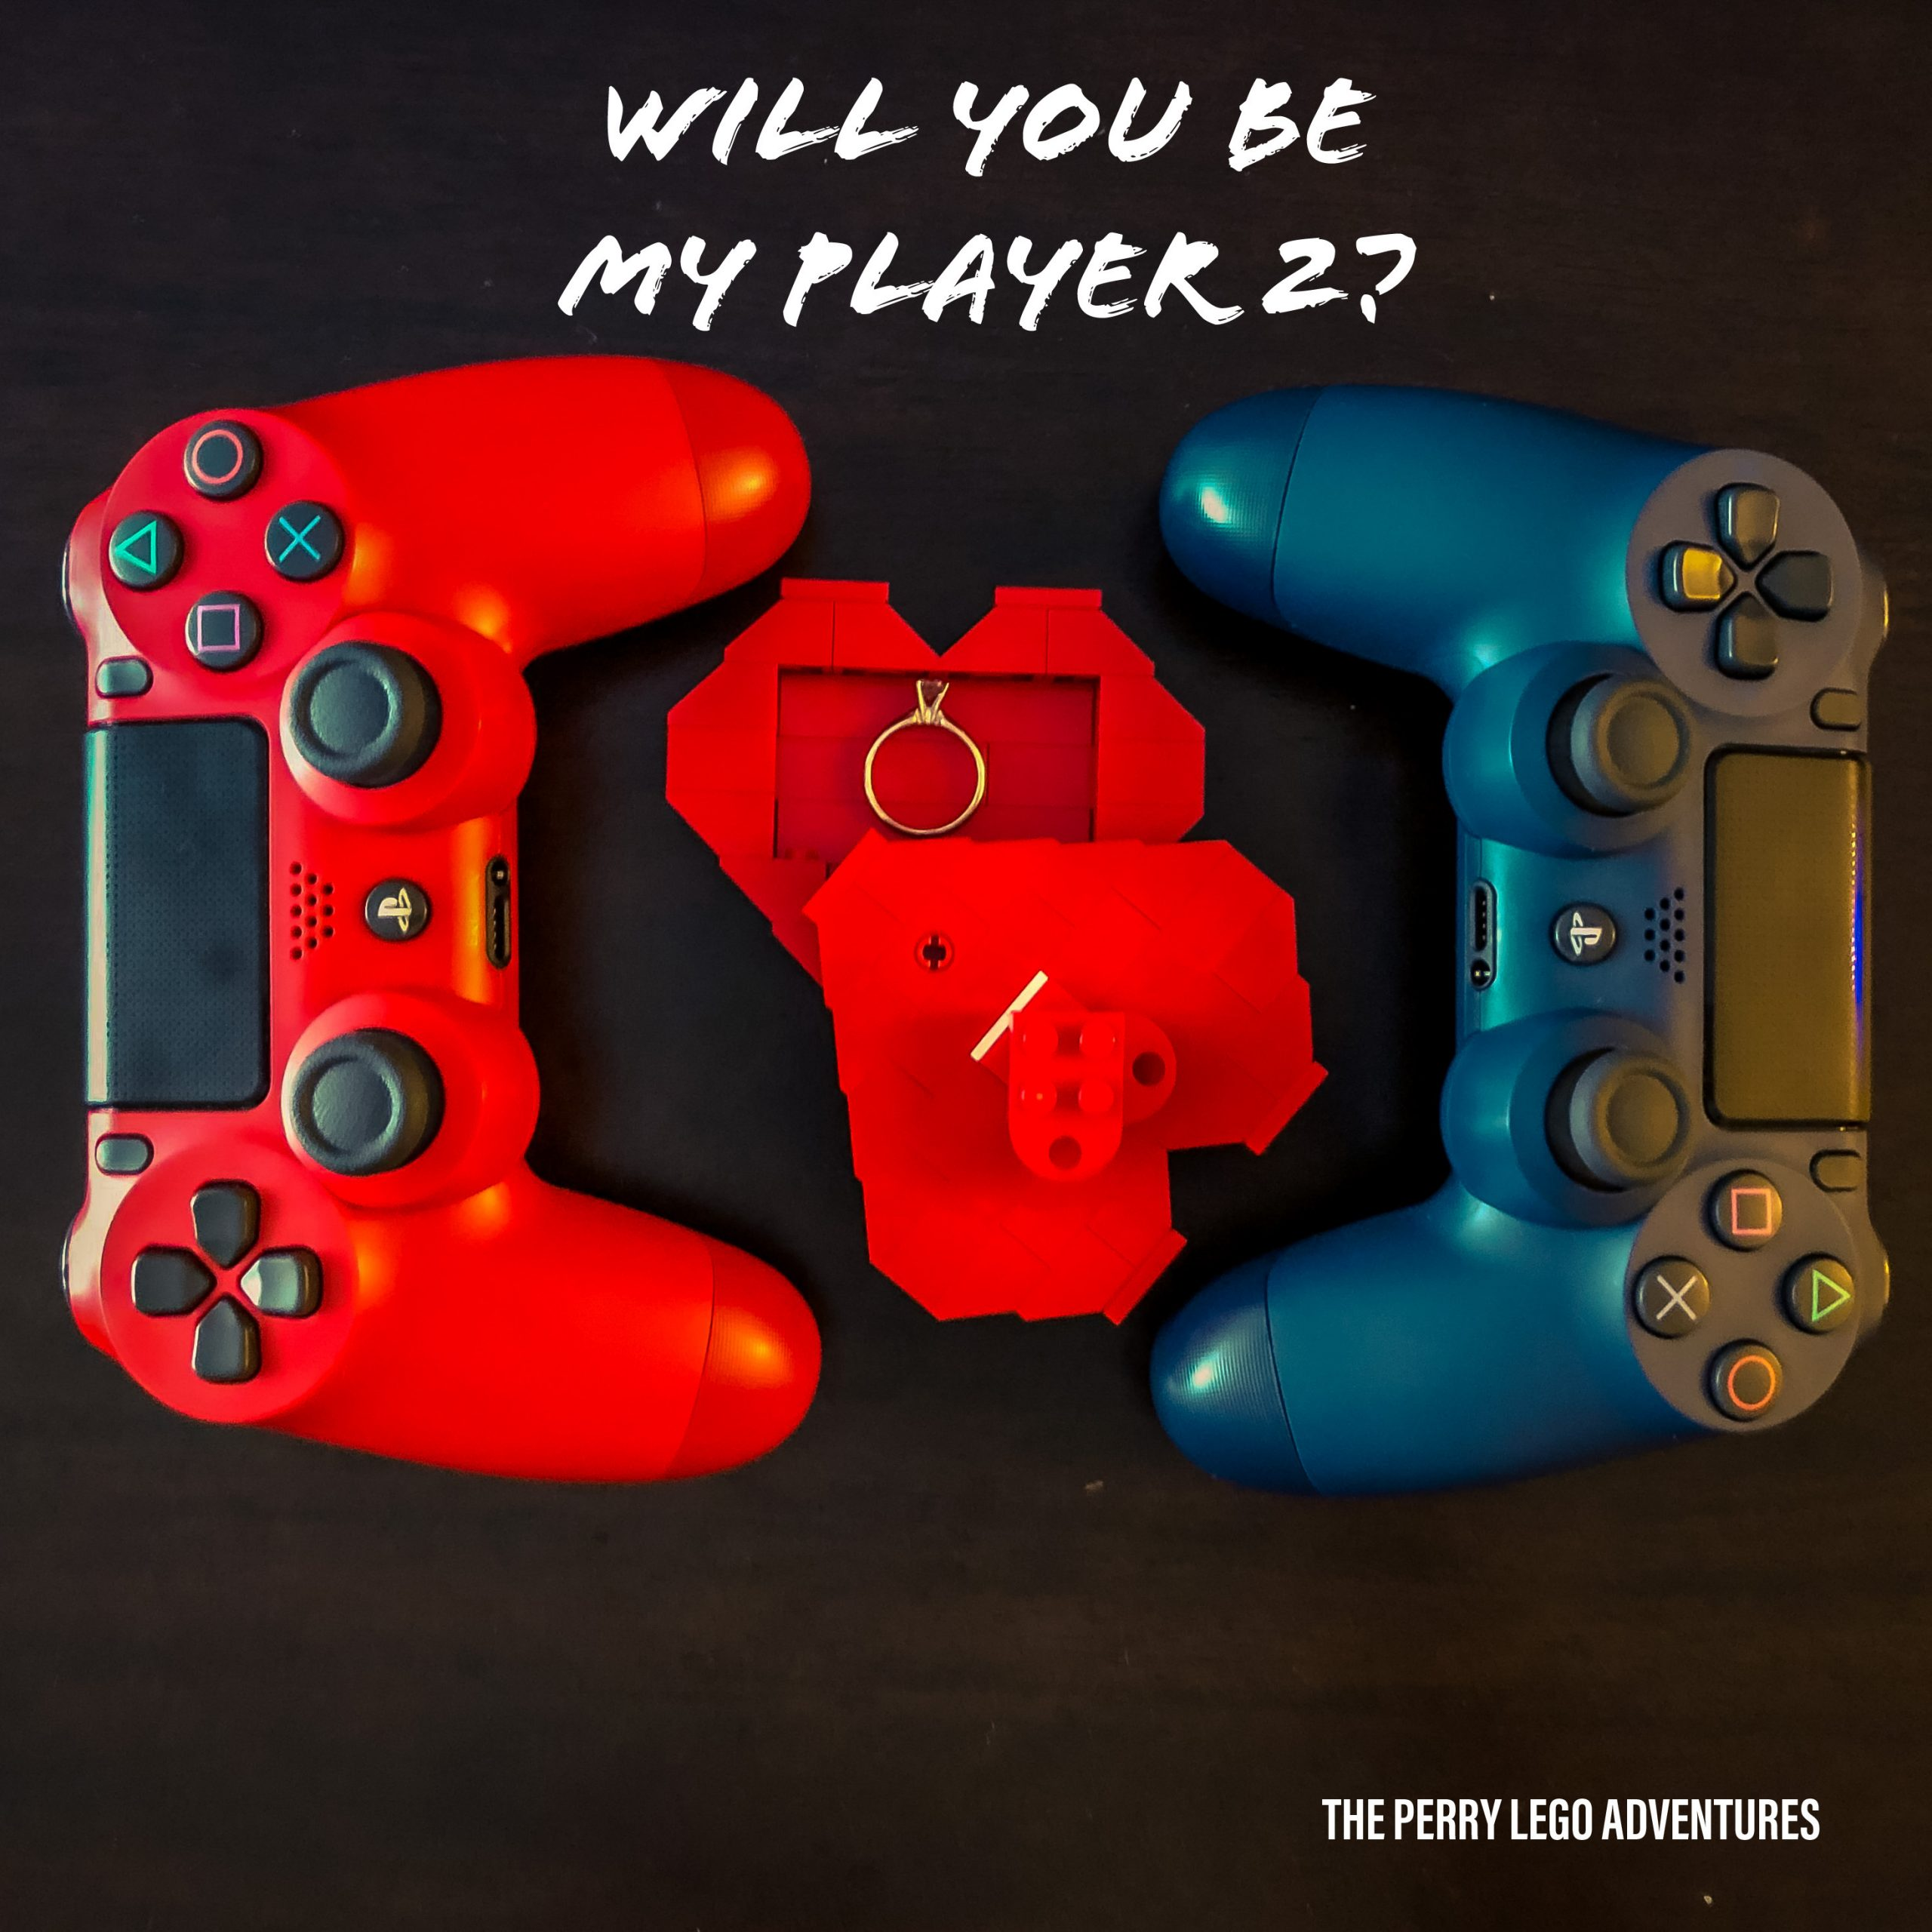 Will you be my player 2? The Perry Lego Adventures